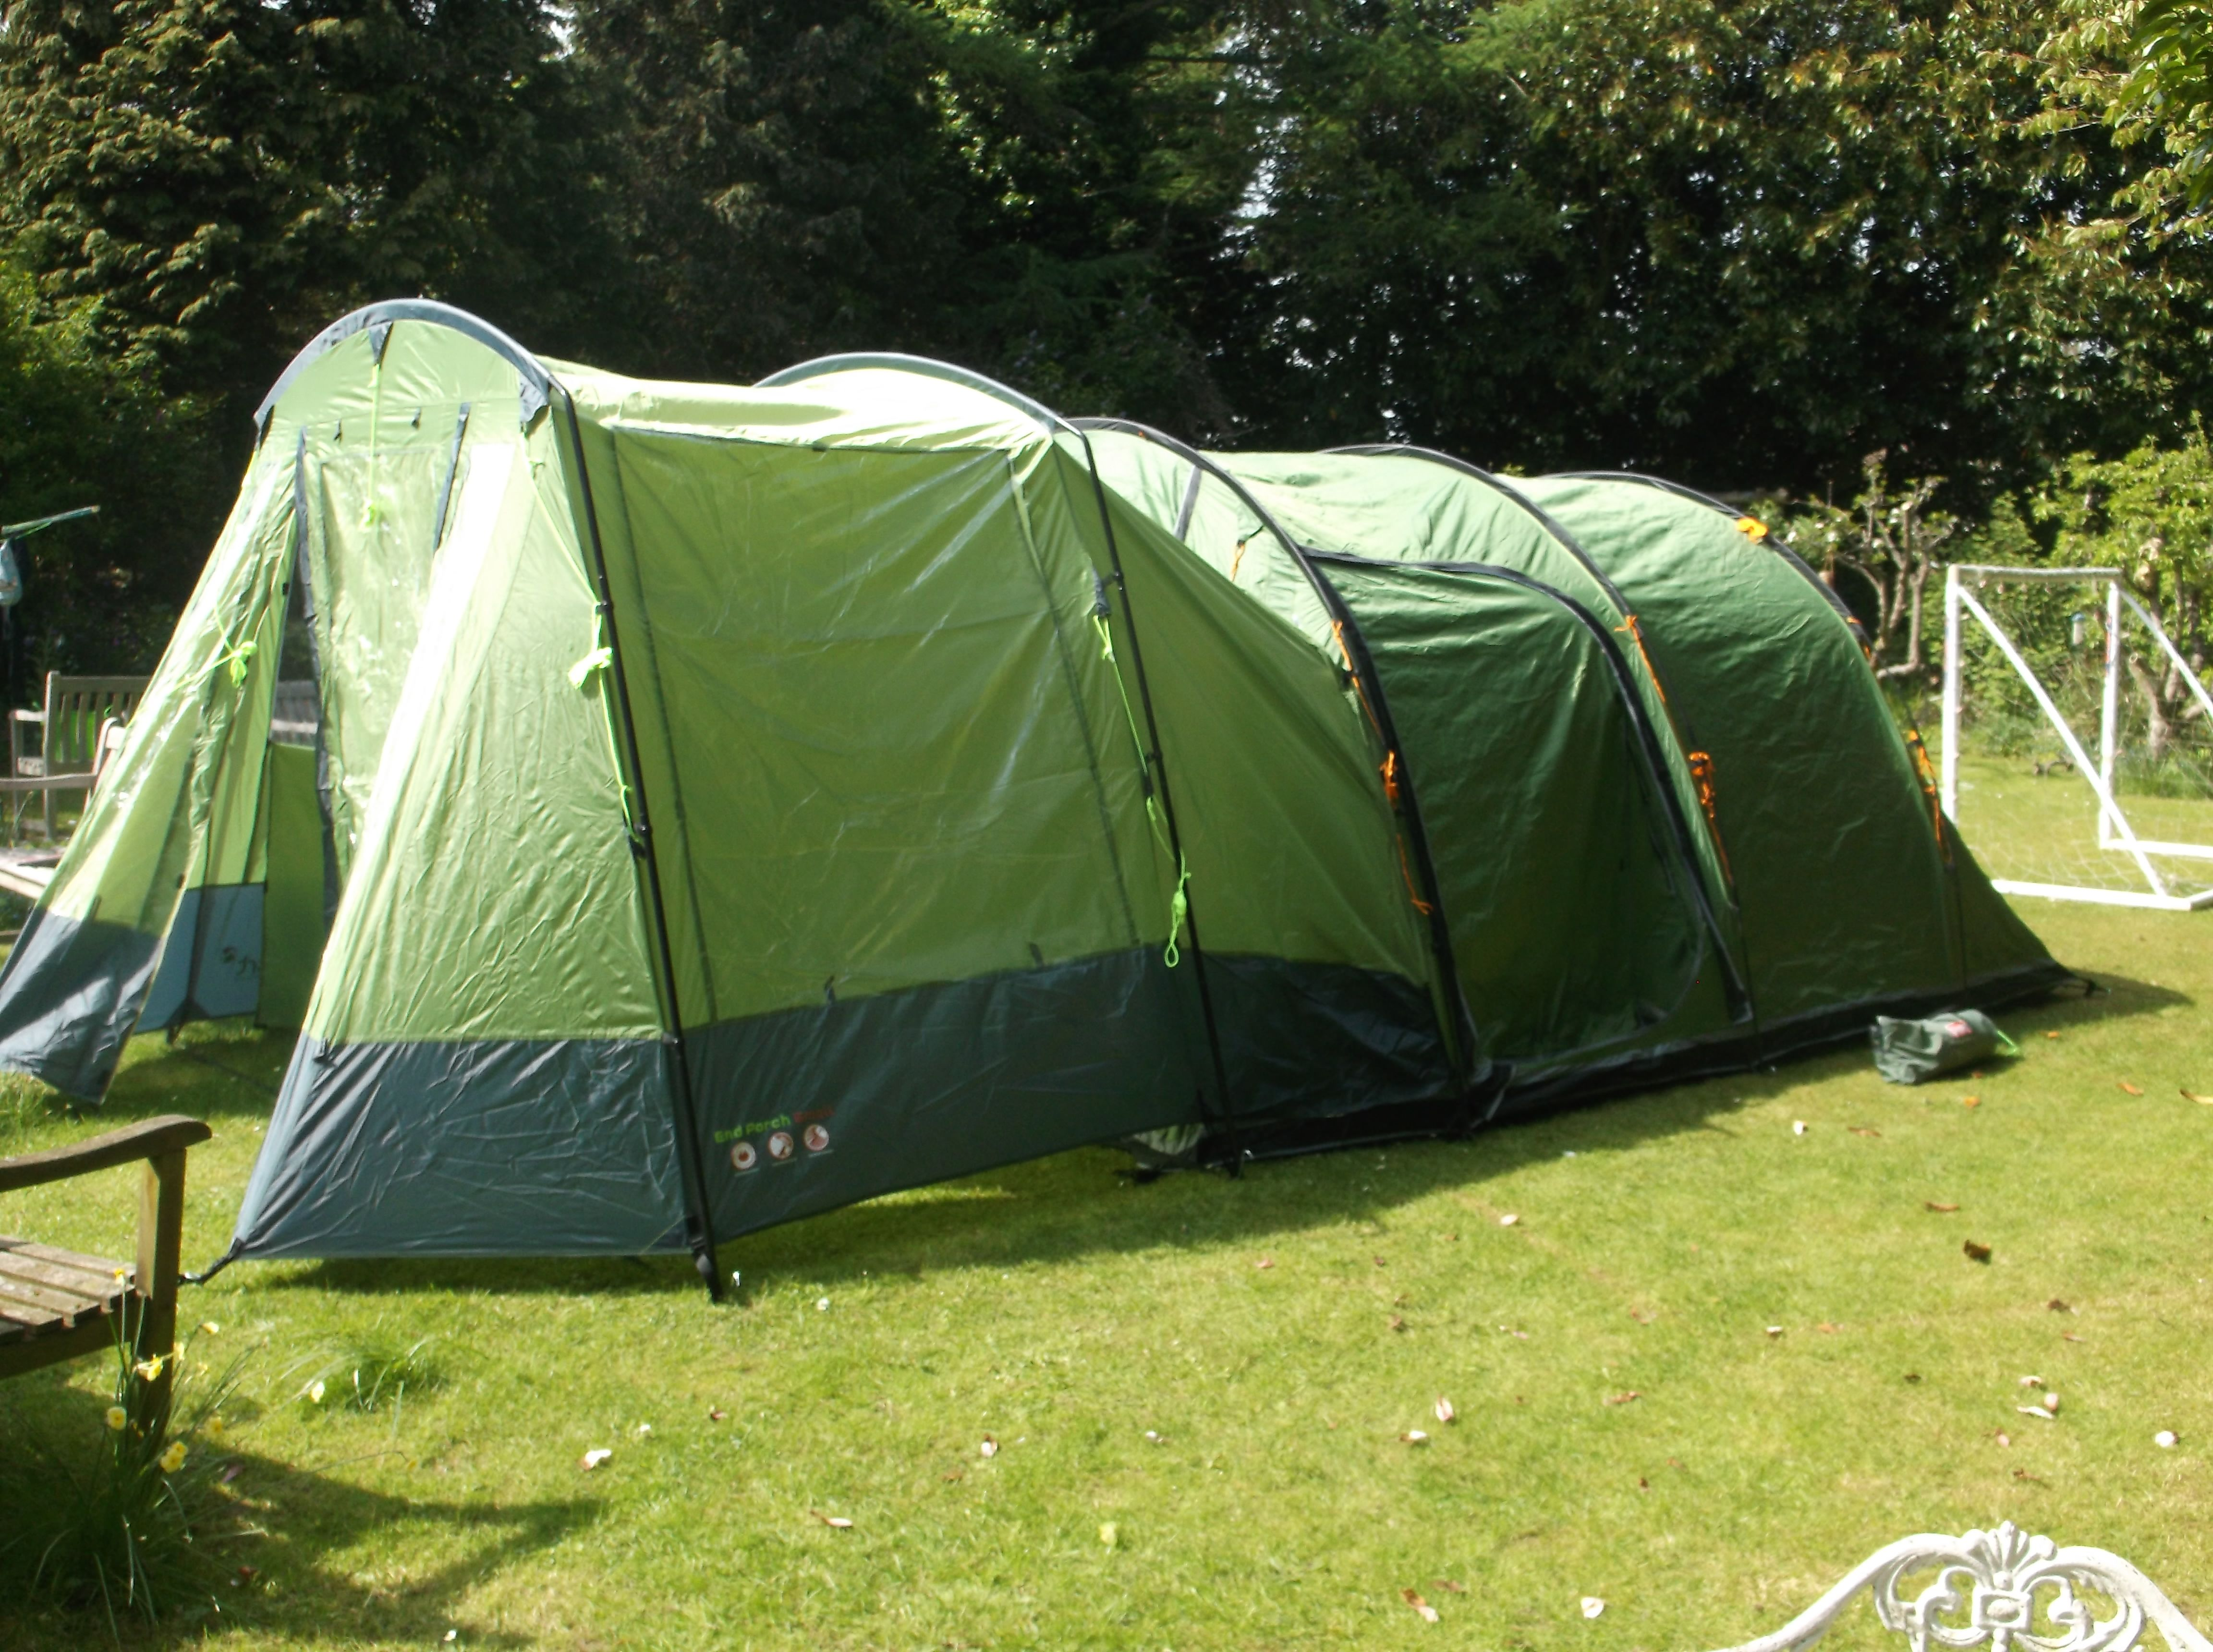 vango Icarus 500 with gelert small porch extension. Up with 1 child helping in 15mins & vango Icarus 500 with gelert small porch extension. Up with 1 ...